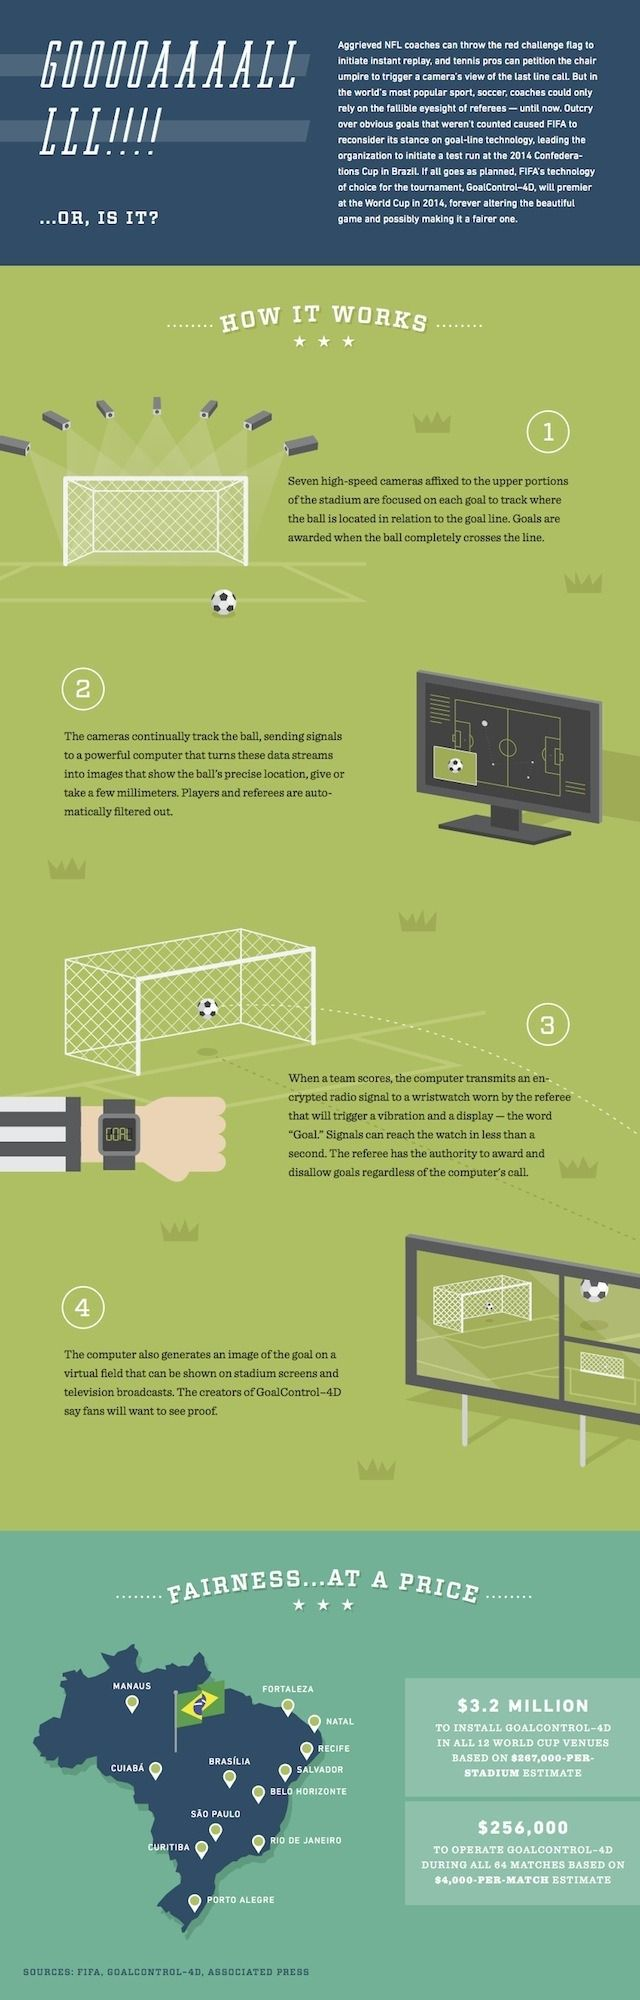 Goal line technology is currently making its international debut at the Confederations Cup. Here's how the slick system works.